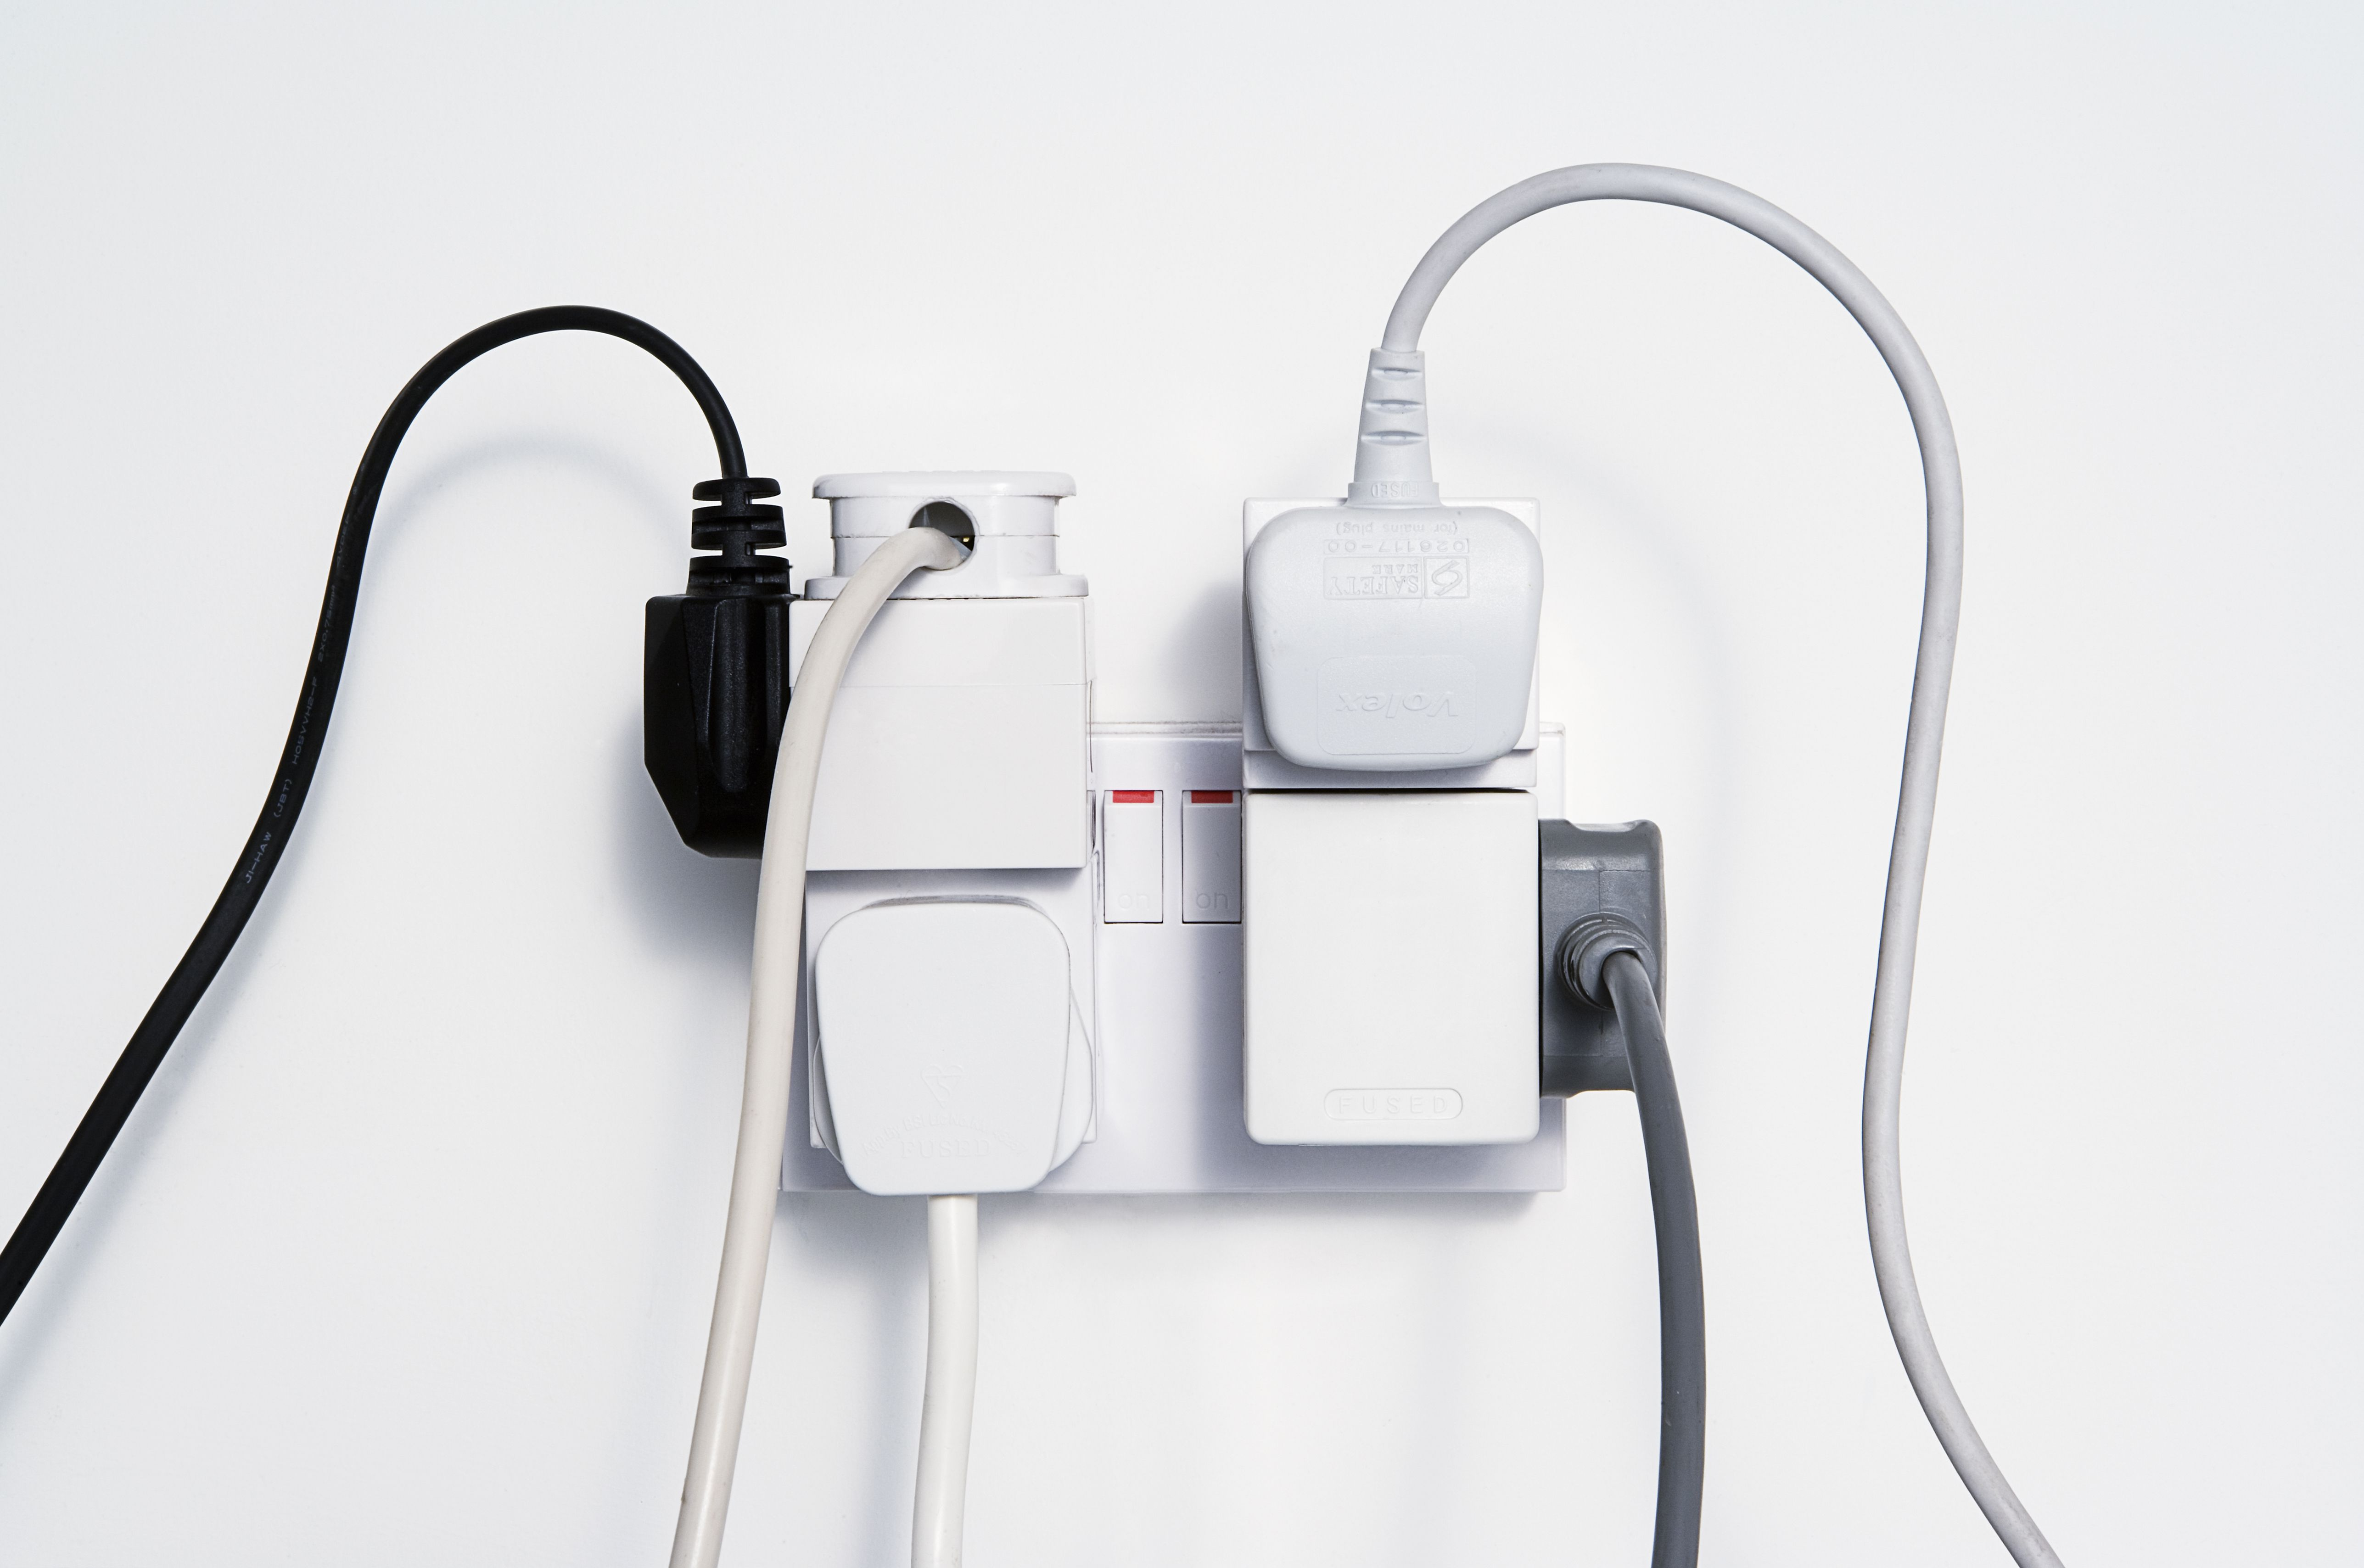 International Power Adapters: What You Need to Know